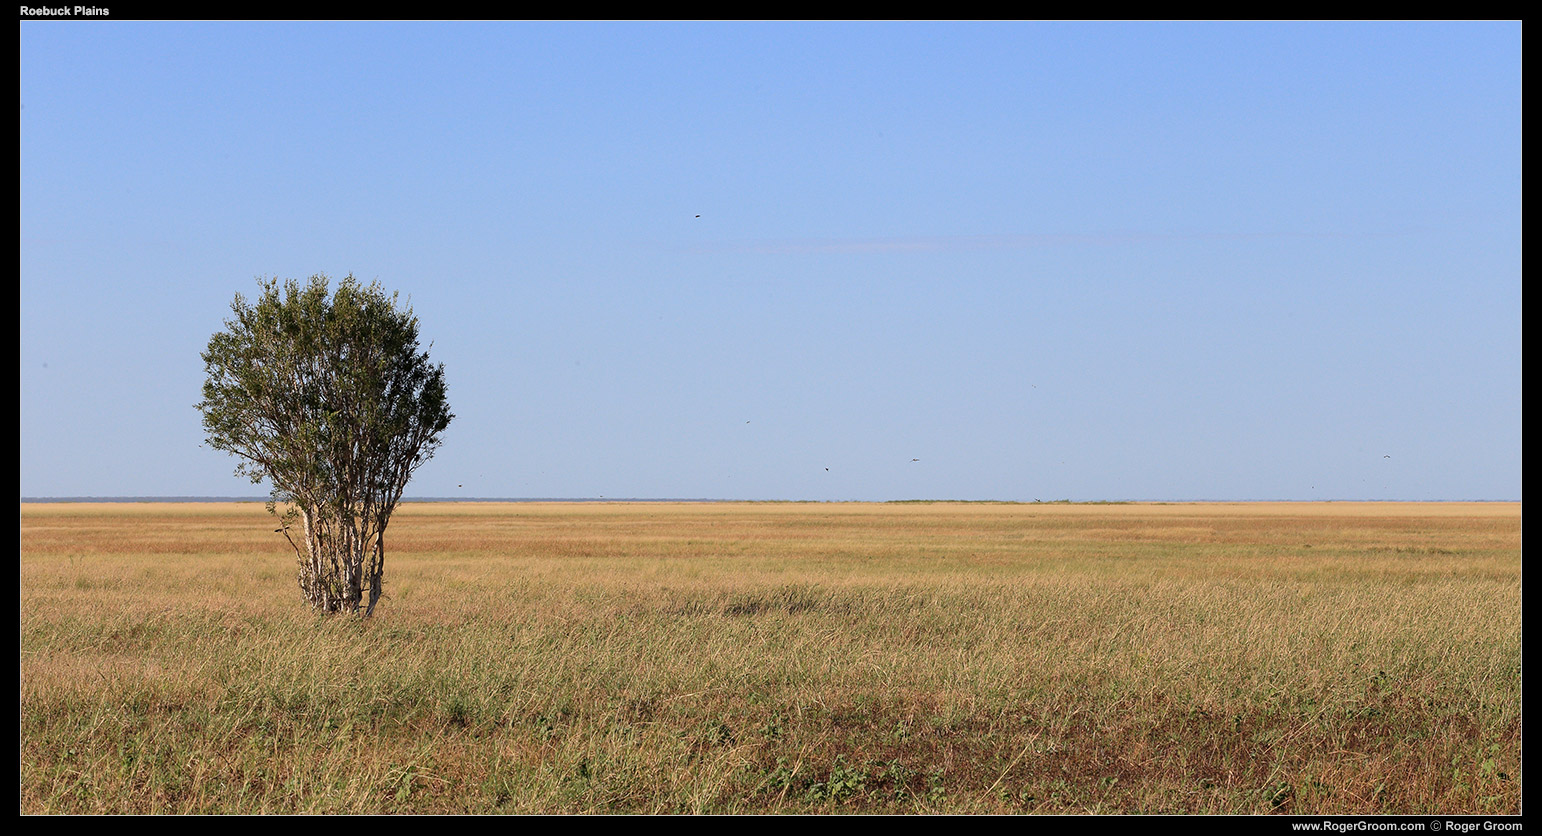 I didn't imagine Australia had such large open grasslands, not natural anyhow. This is Roebuck Plains, taken on a tour with Broome Bird Observatory. Endless plains of grass you literally cannot see the end of, yet teaming with birds.